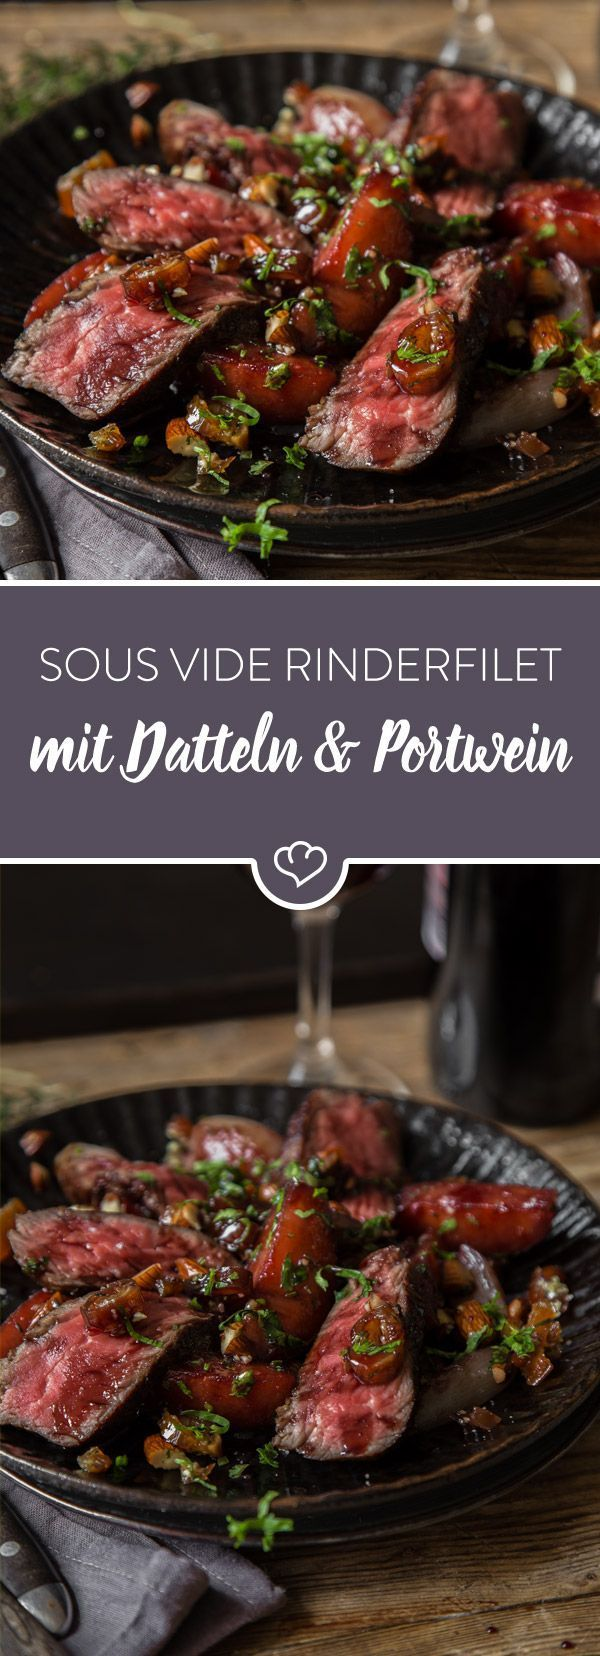 sous vide rinderfilet mit datteln mandeln und sherry. Black Bedroom Furniture Sets. Home Design Ideas